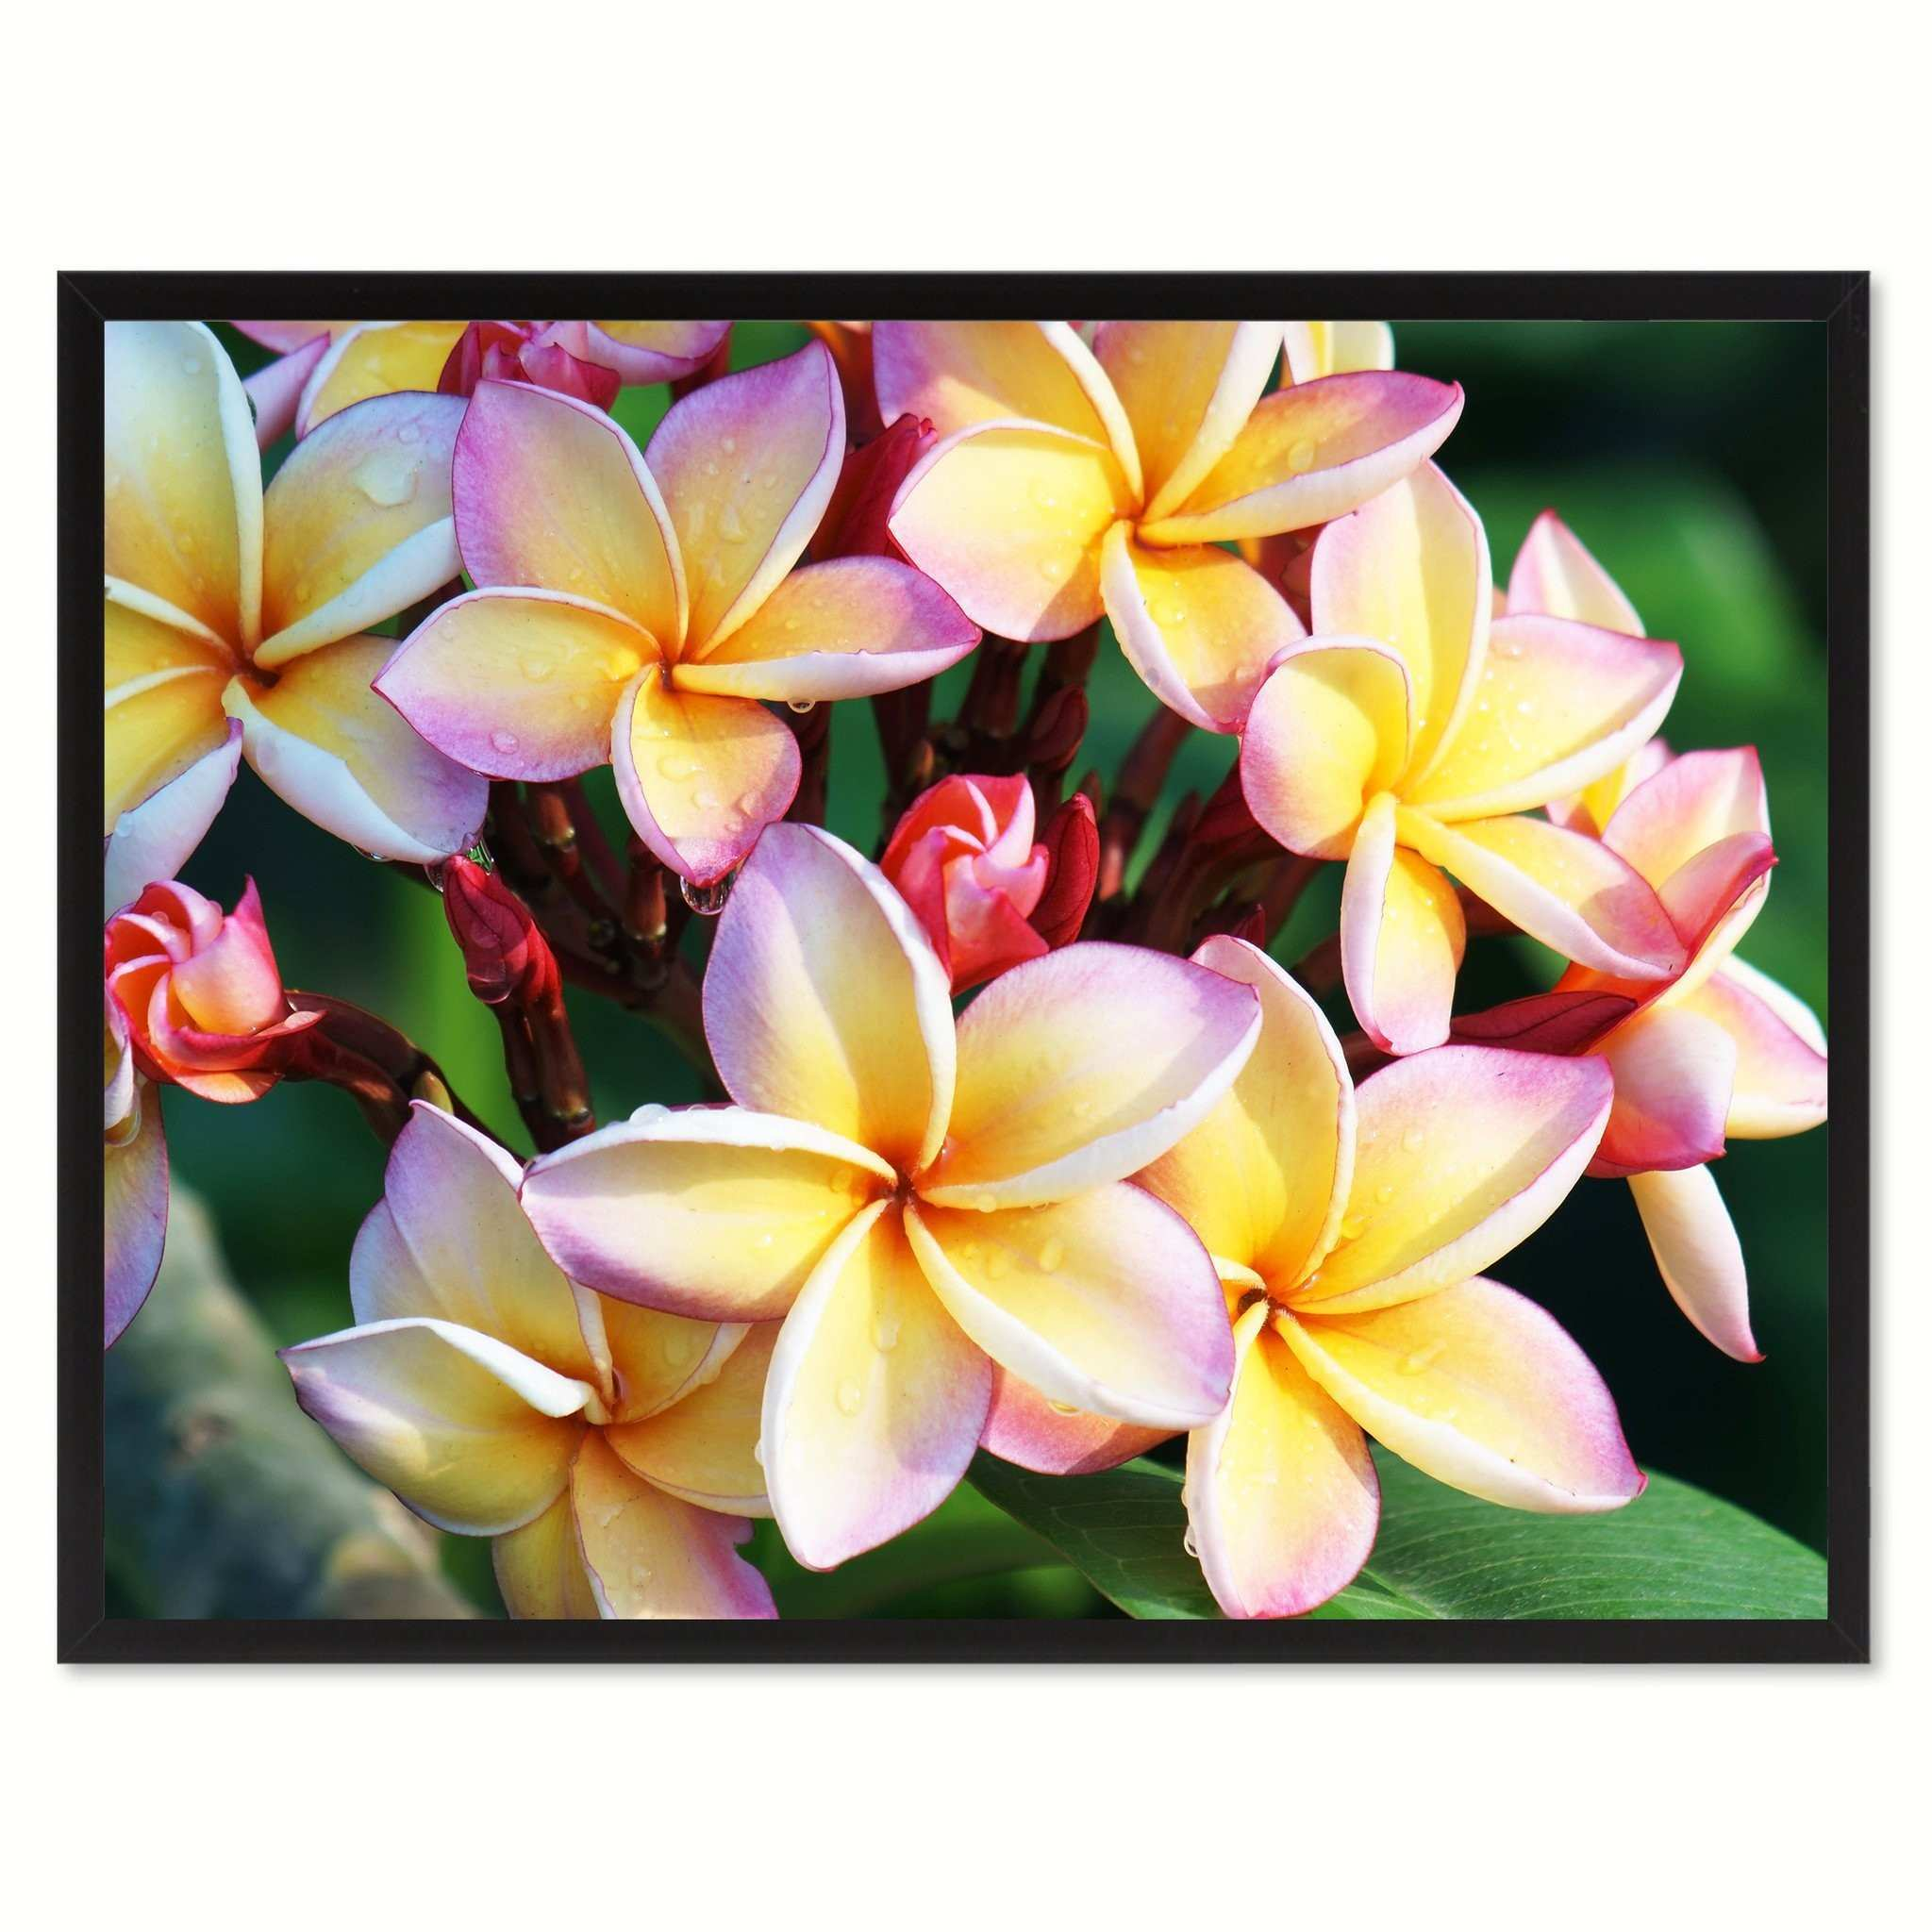 Fantastic Flower Wall Art Decor Picture Collection Art & Wall